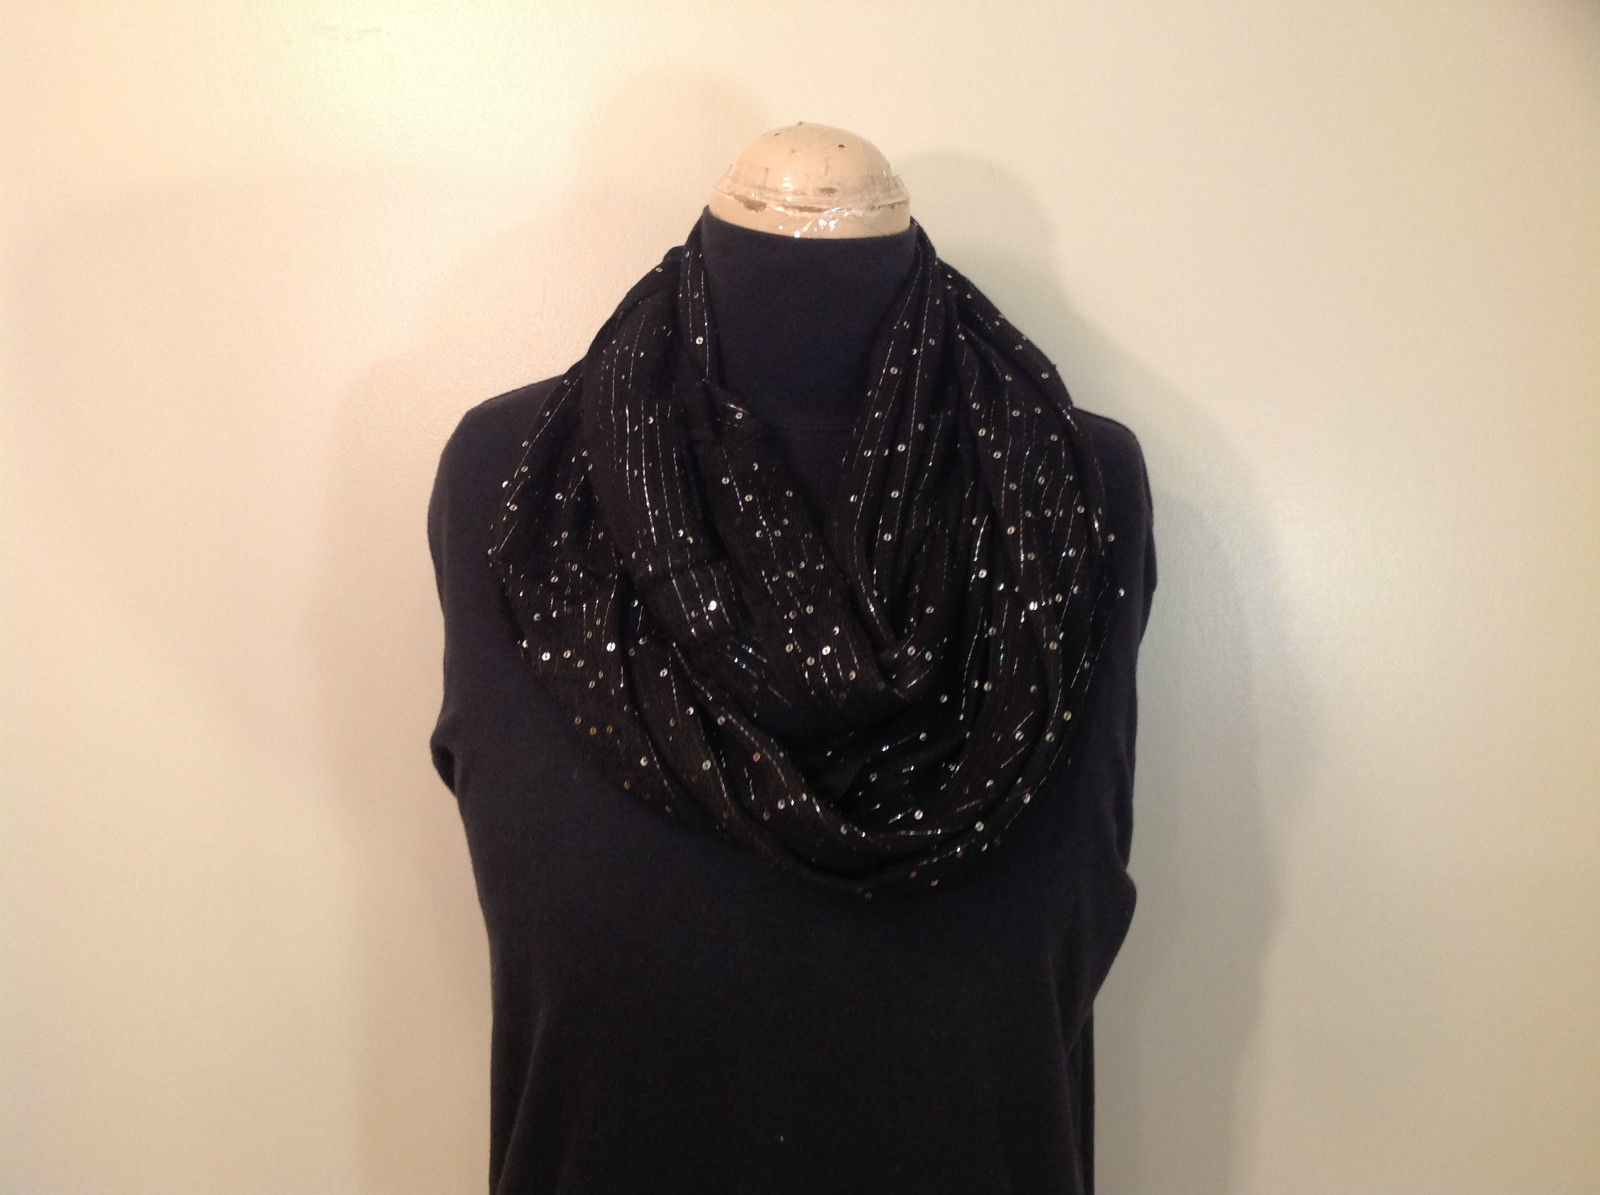 Black Infinity Scarf with Metallic Sequins 100 Percent Viscose